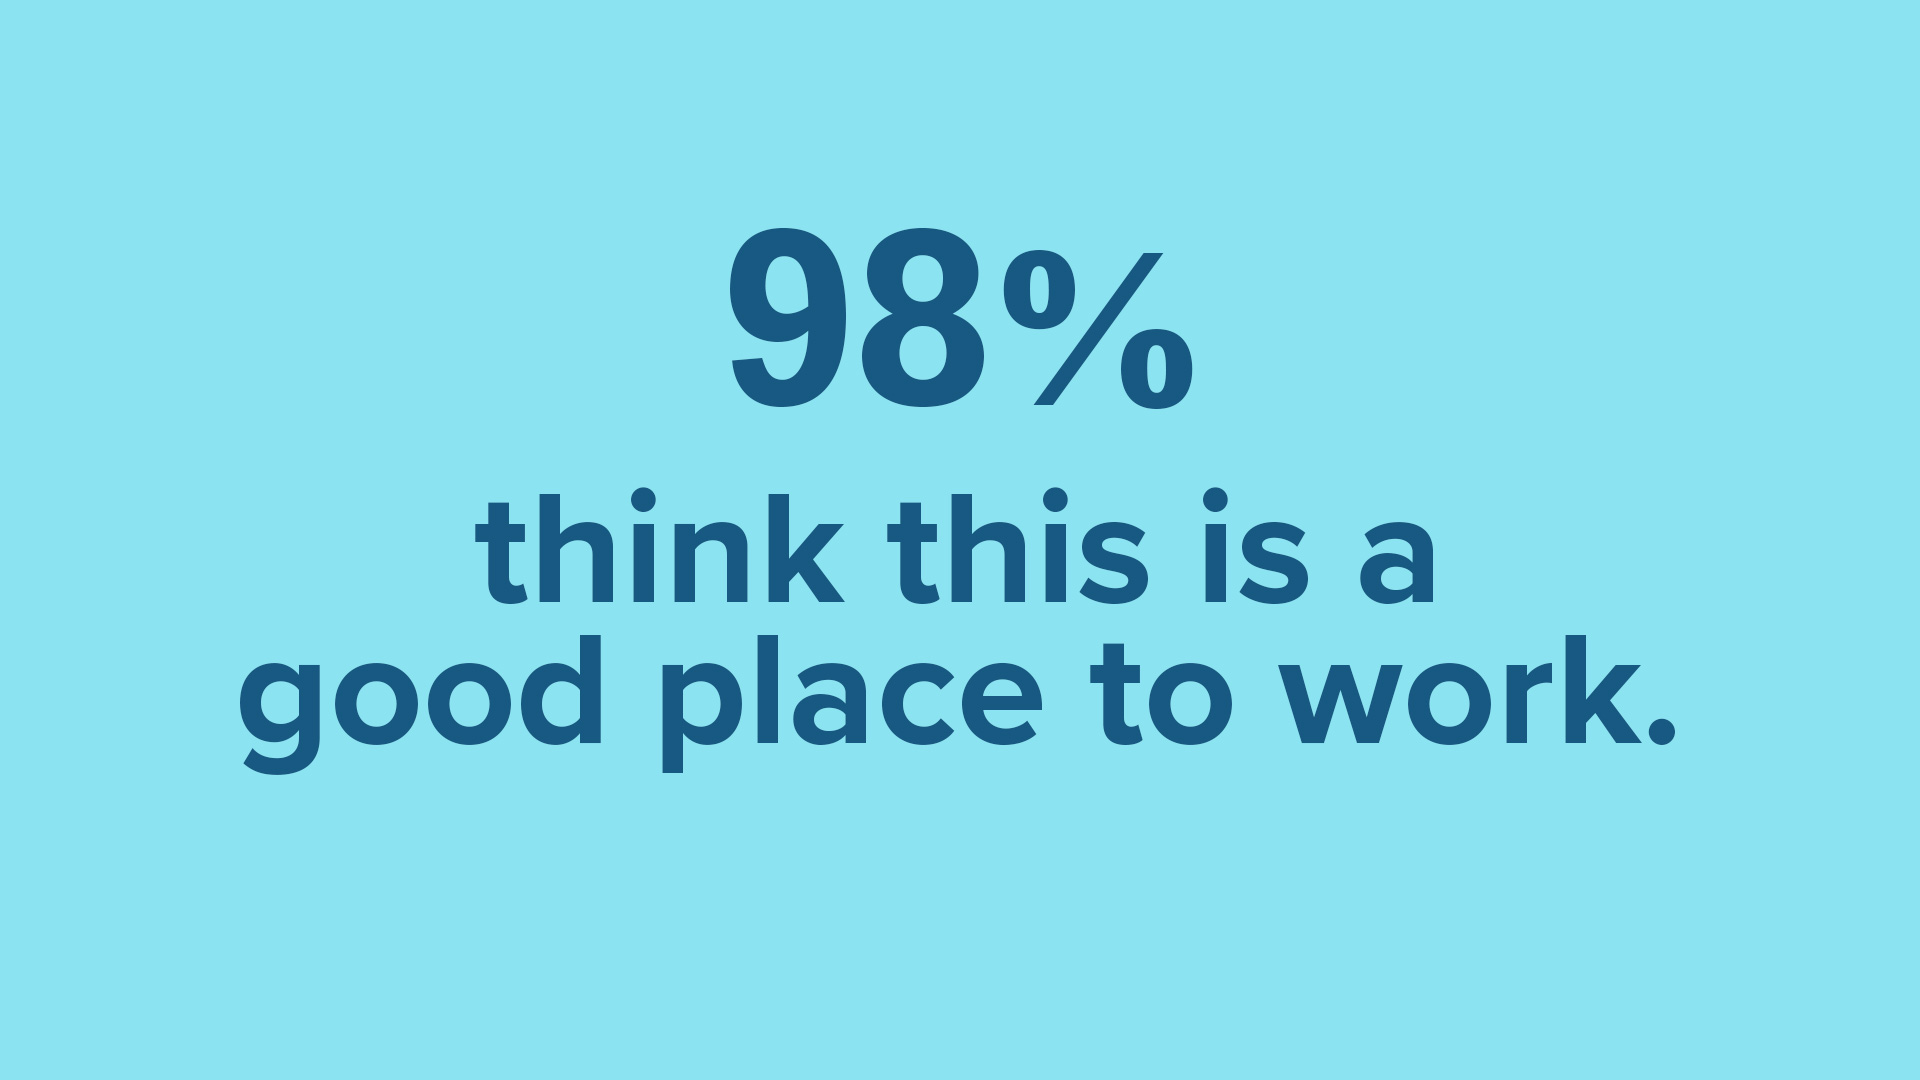 98% think this is a good place to work